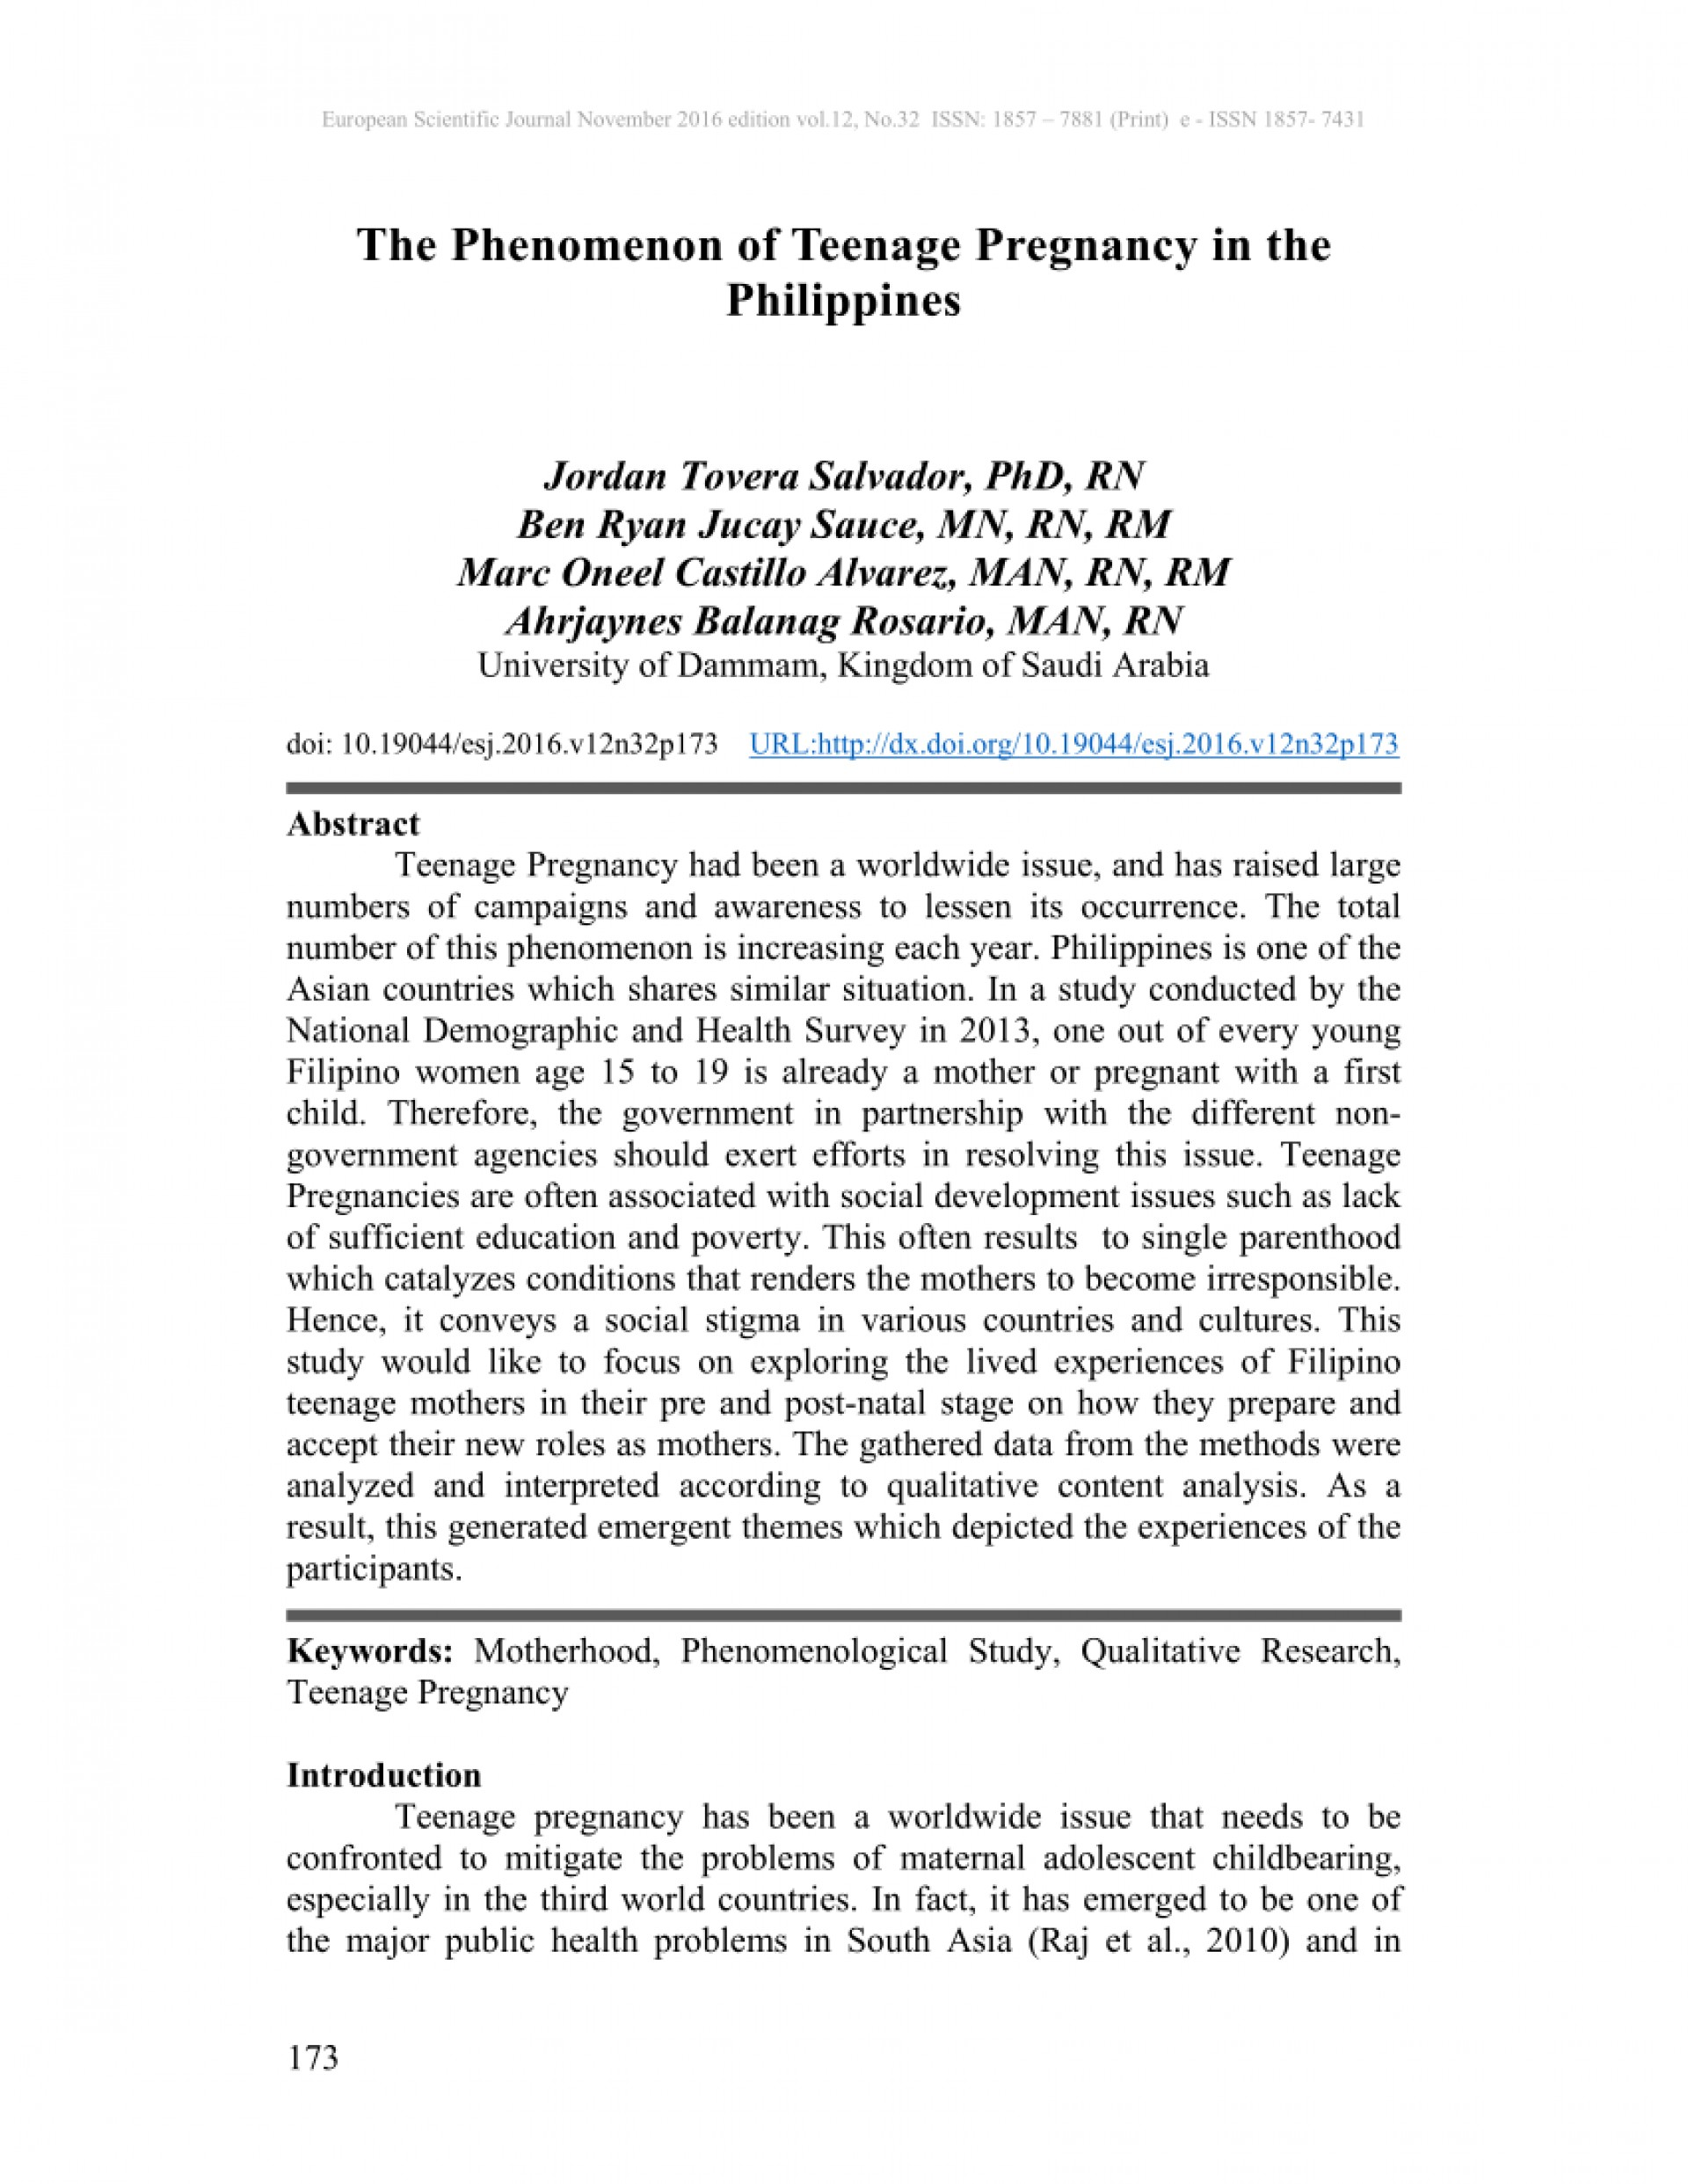 001 Research Paper Teenage Pregnancy Rare In The Philippines About Pdf 1920